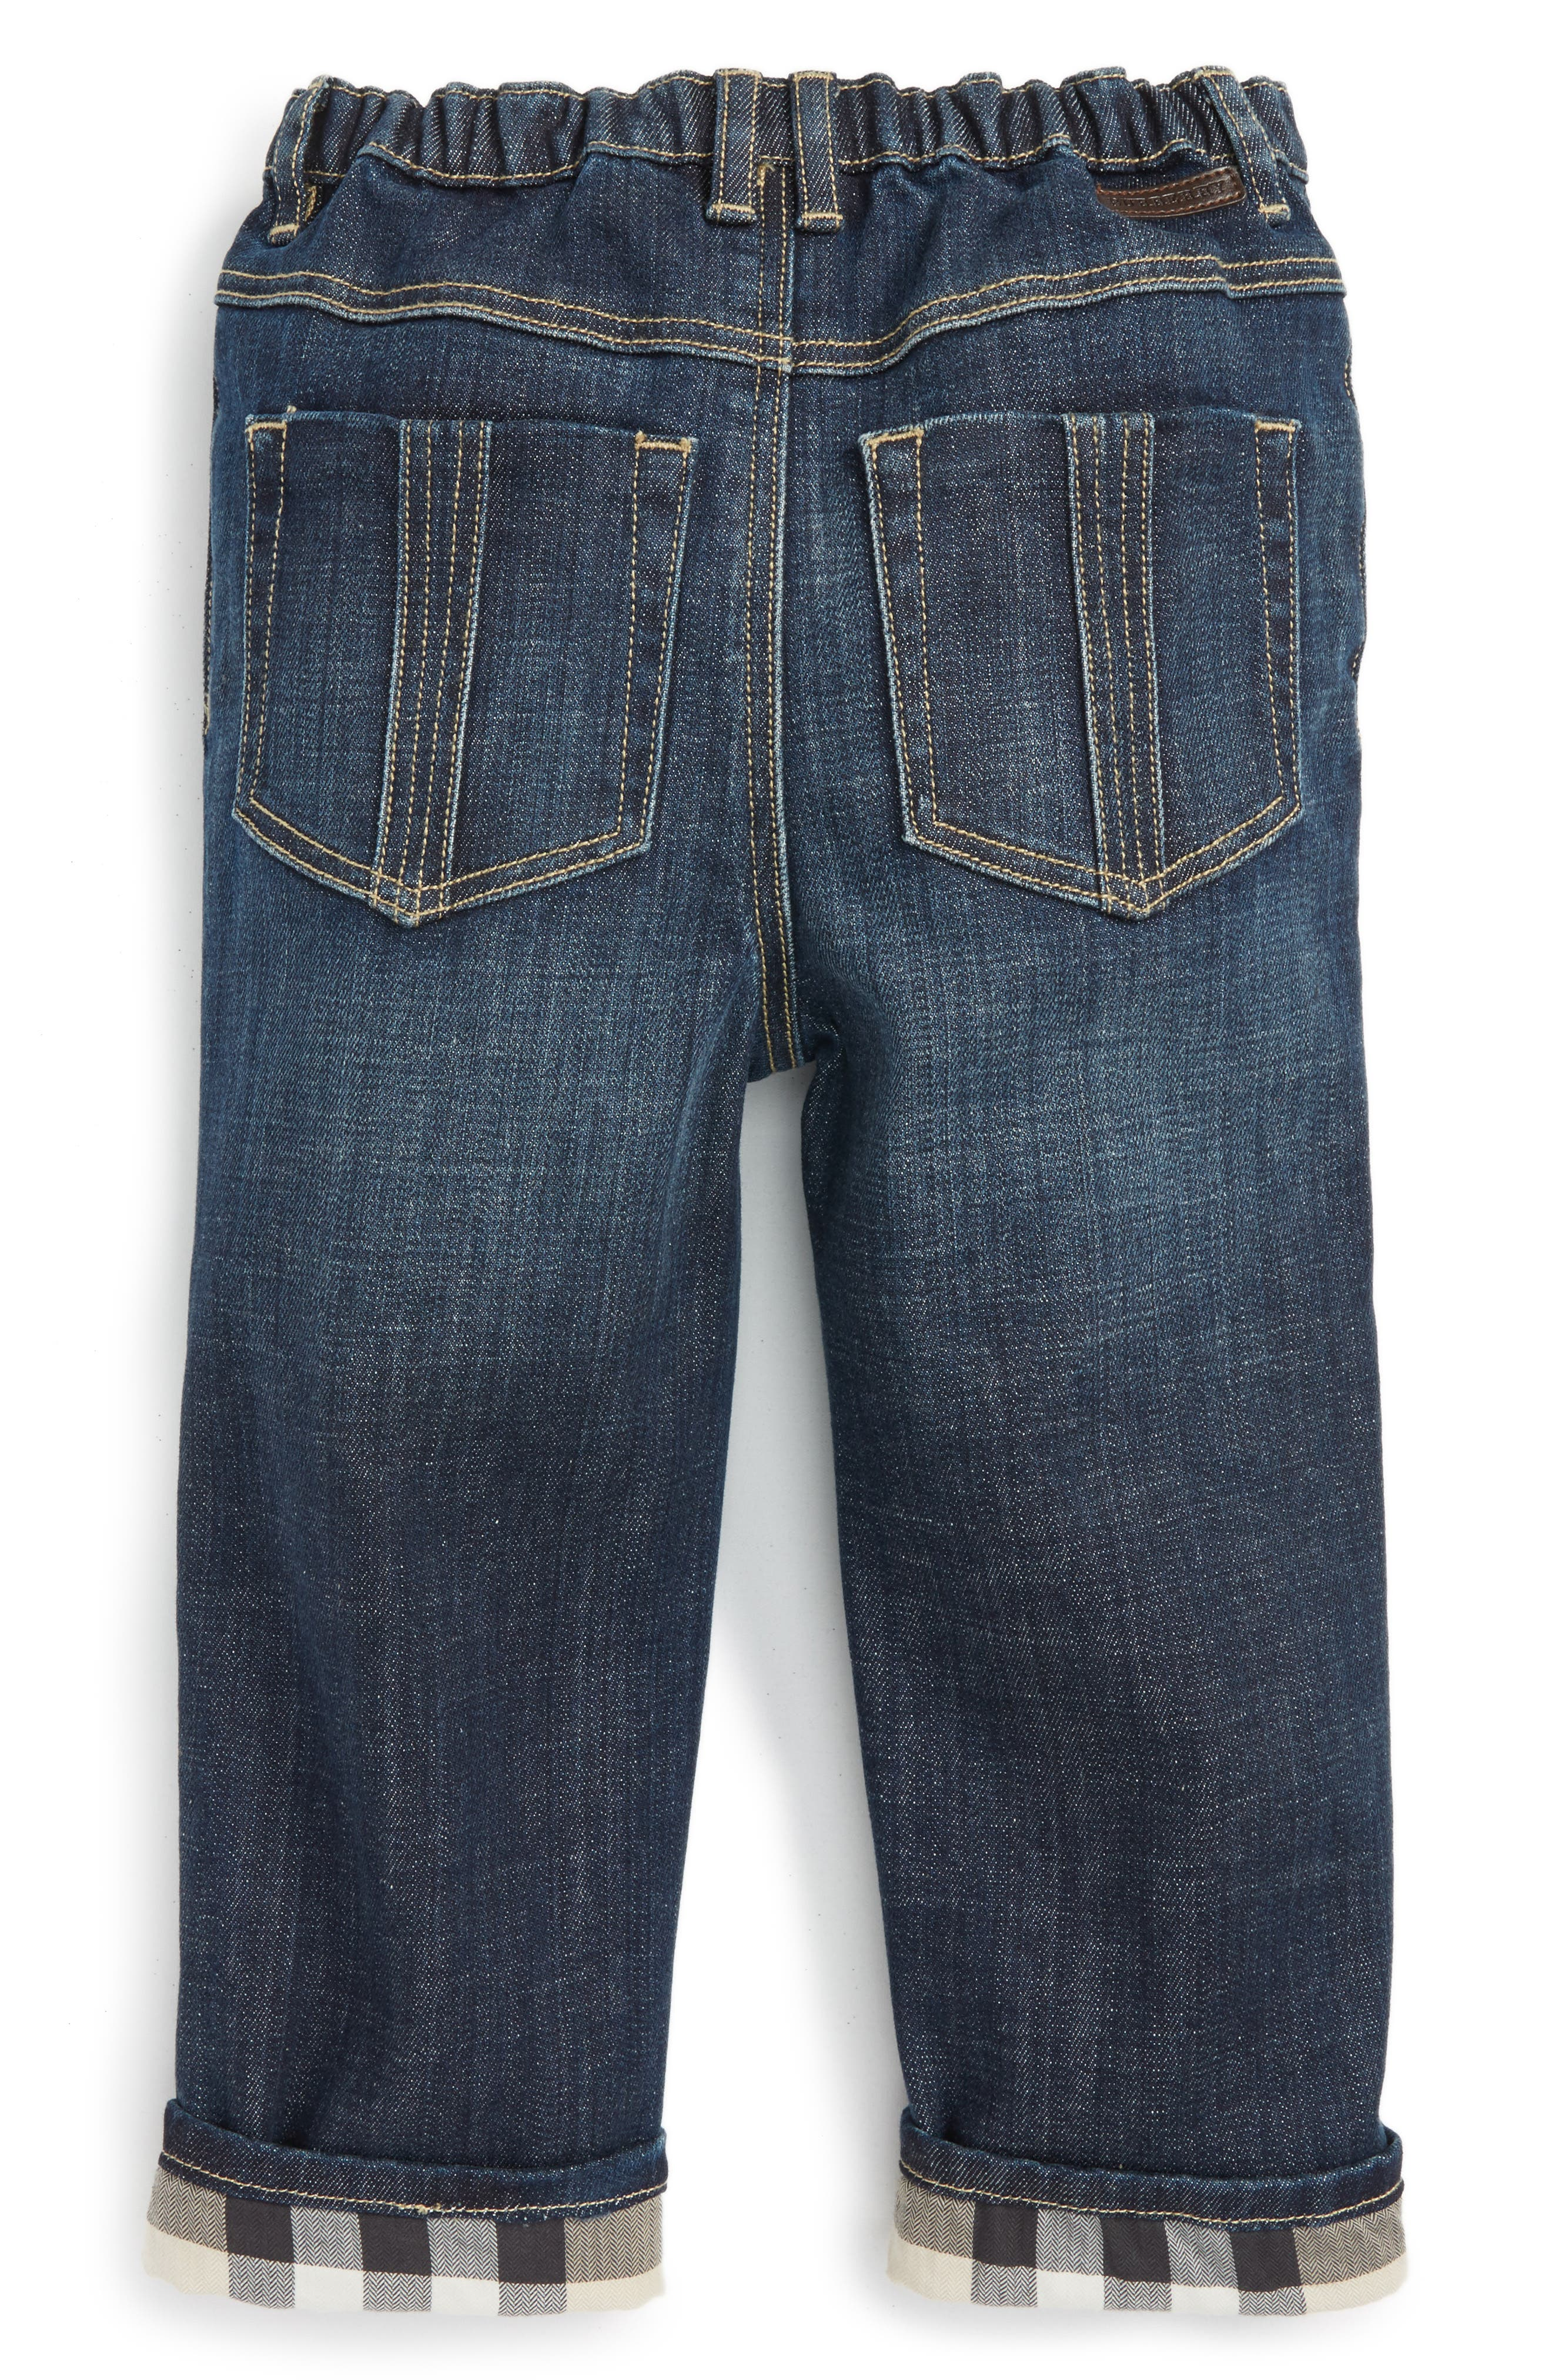 Pierre Check Lined Jeans,                         Main,                         color, 400